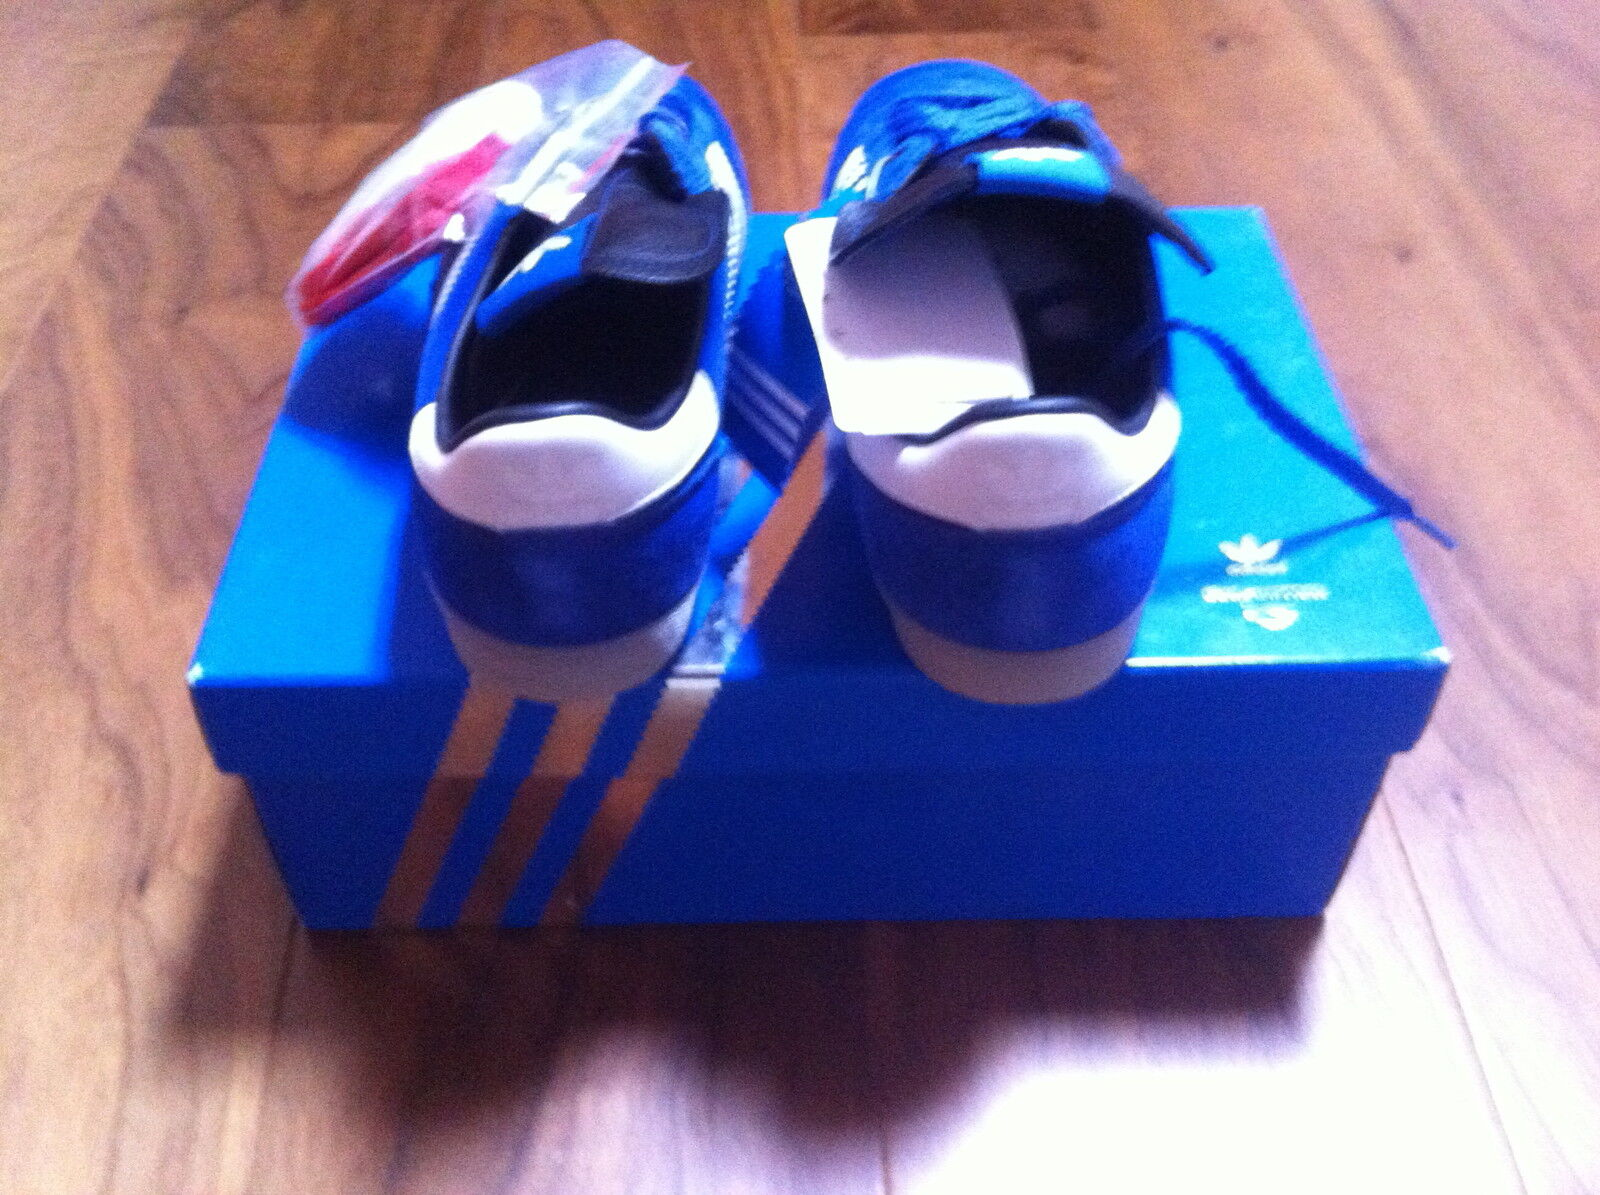 ADIDAS CONSORTIUM ADICUP 2010 VOTARY UNDFTD ARKITIP LIMITED EDITION SOLD OUT